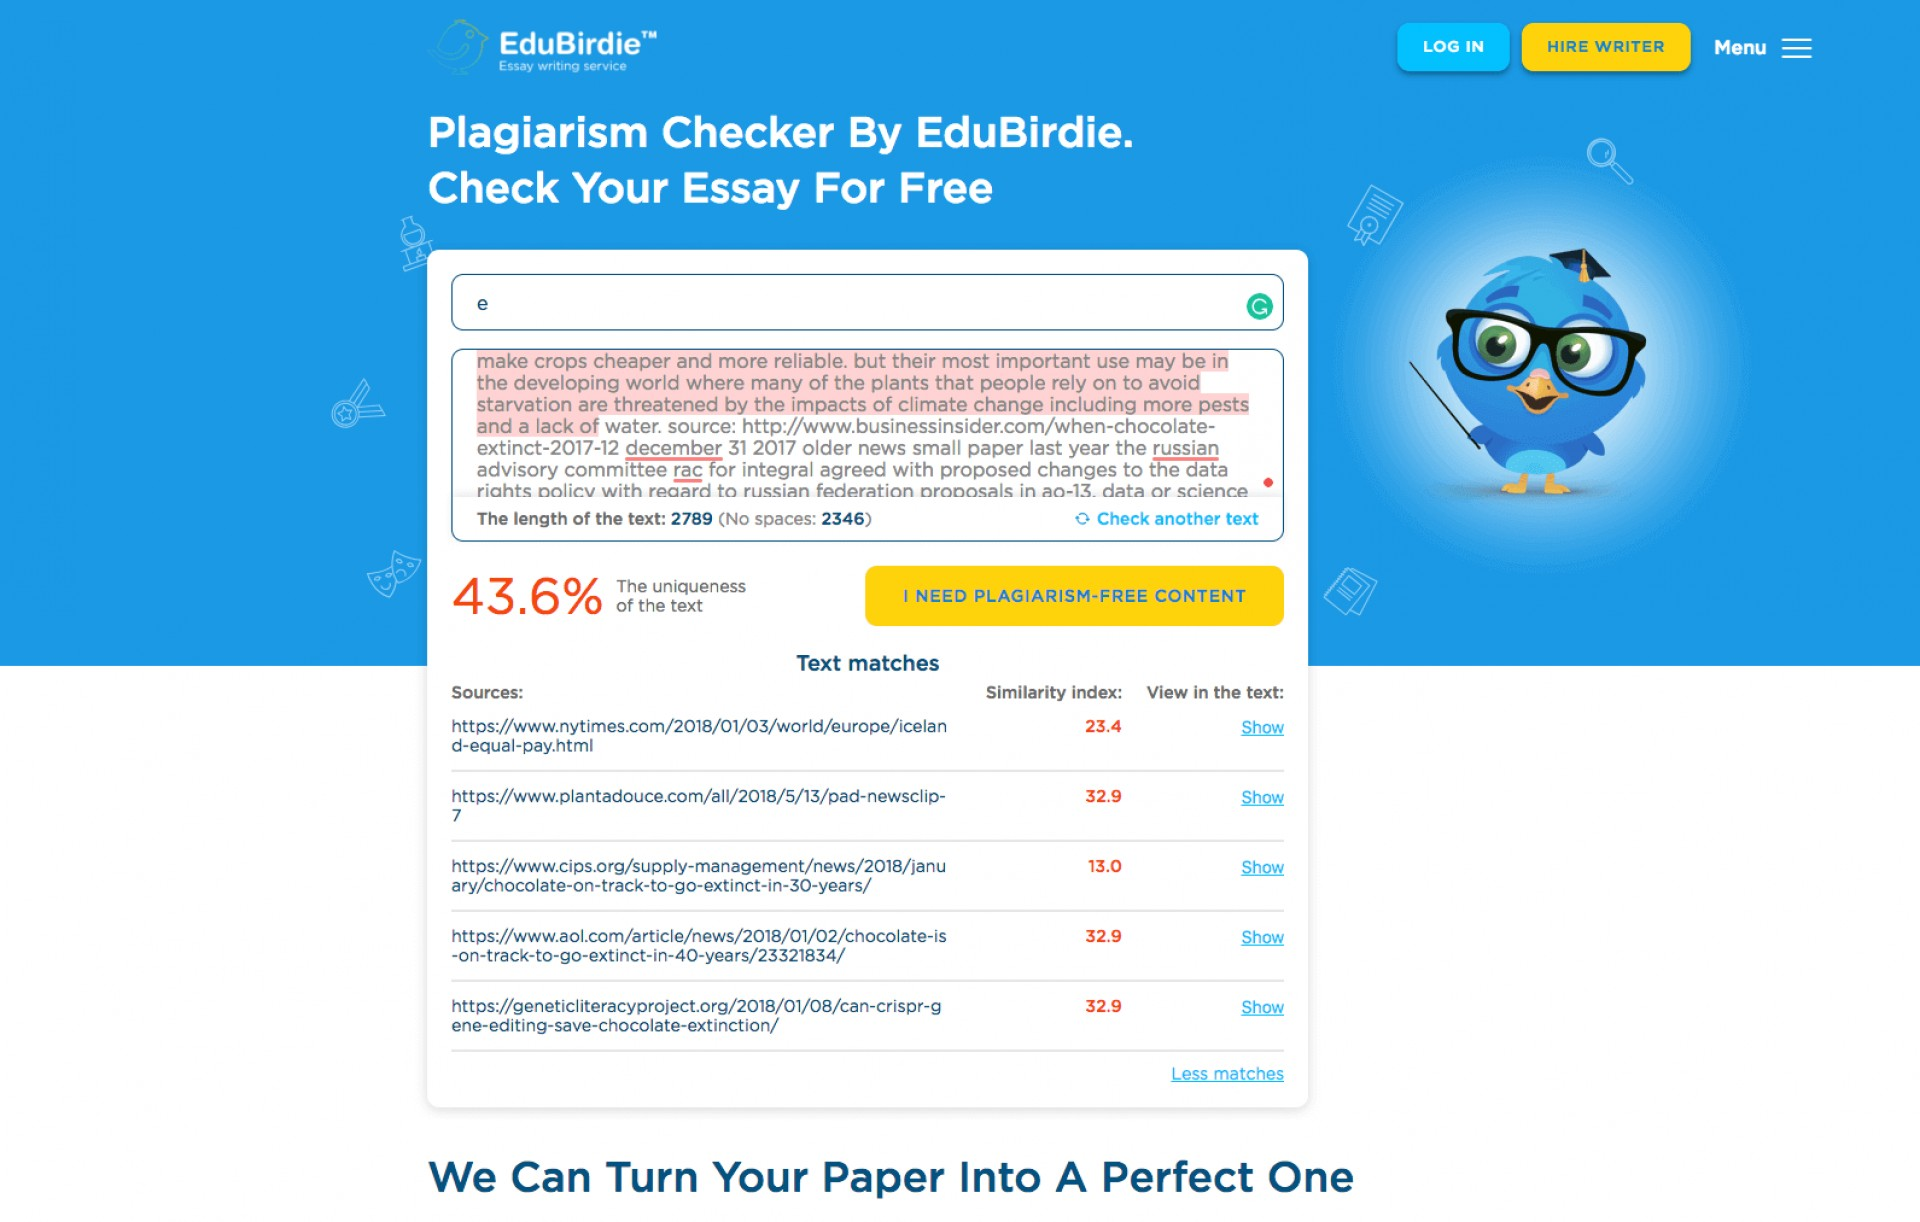 024 Essay Plagiarism Checker Example Unforgettable Full Paper Free Turnitin Reddit 1920